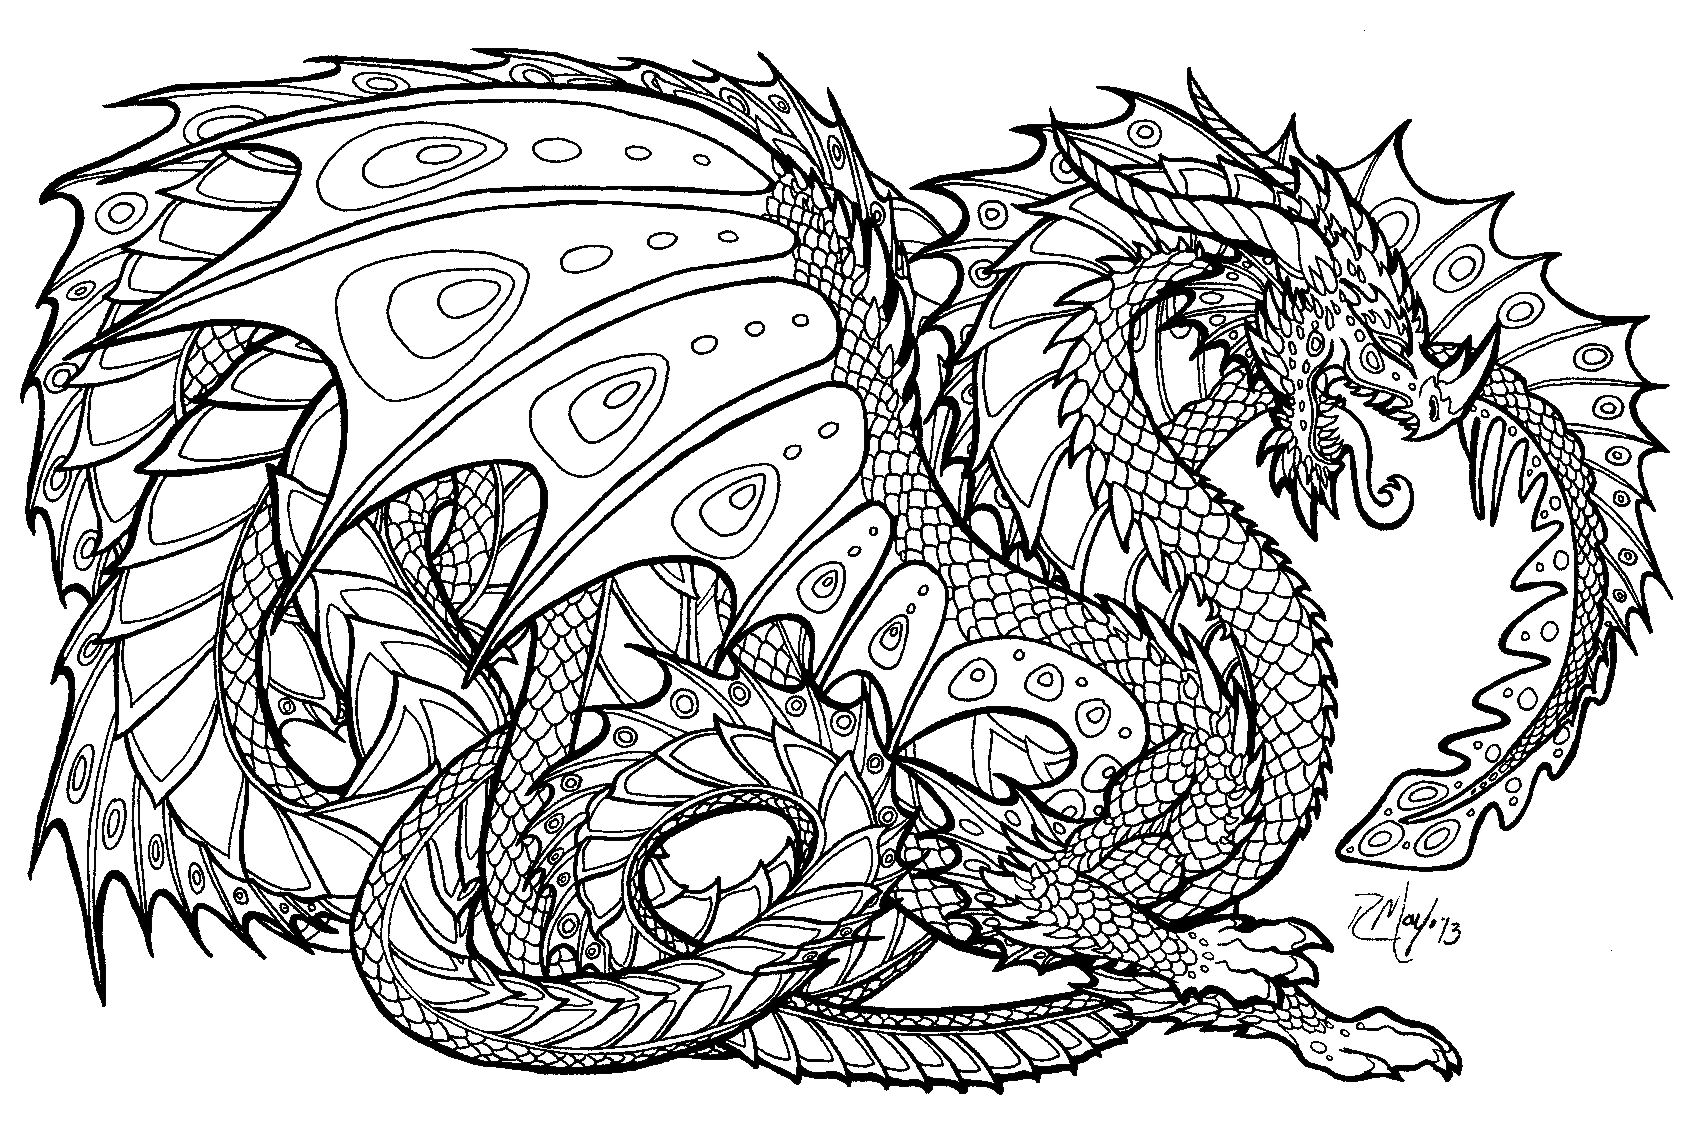 dragon for coloring chinese dragon coloring pages to download and print for free coloring dragon for